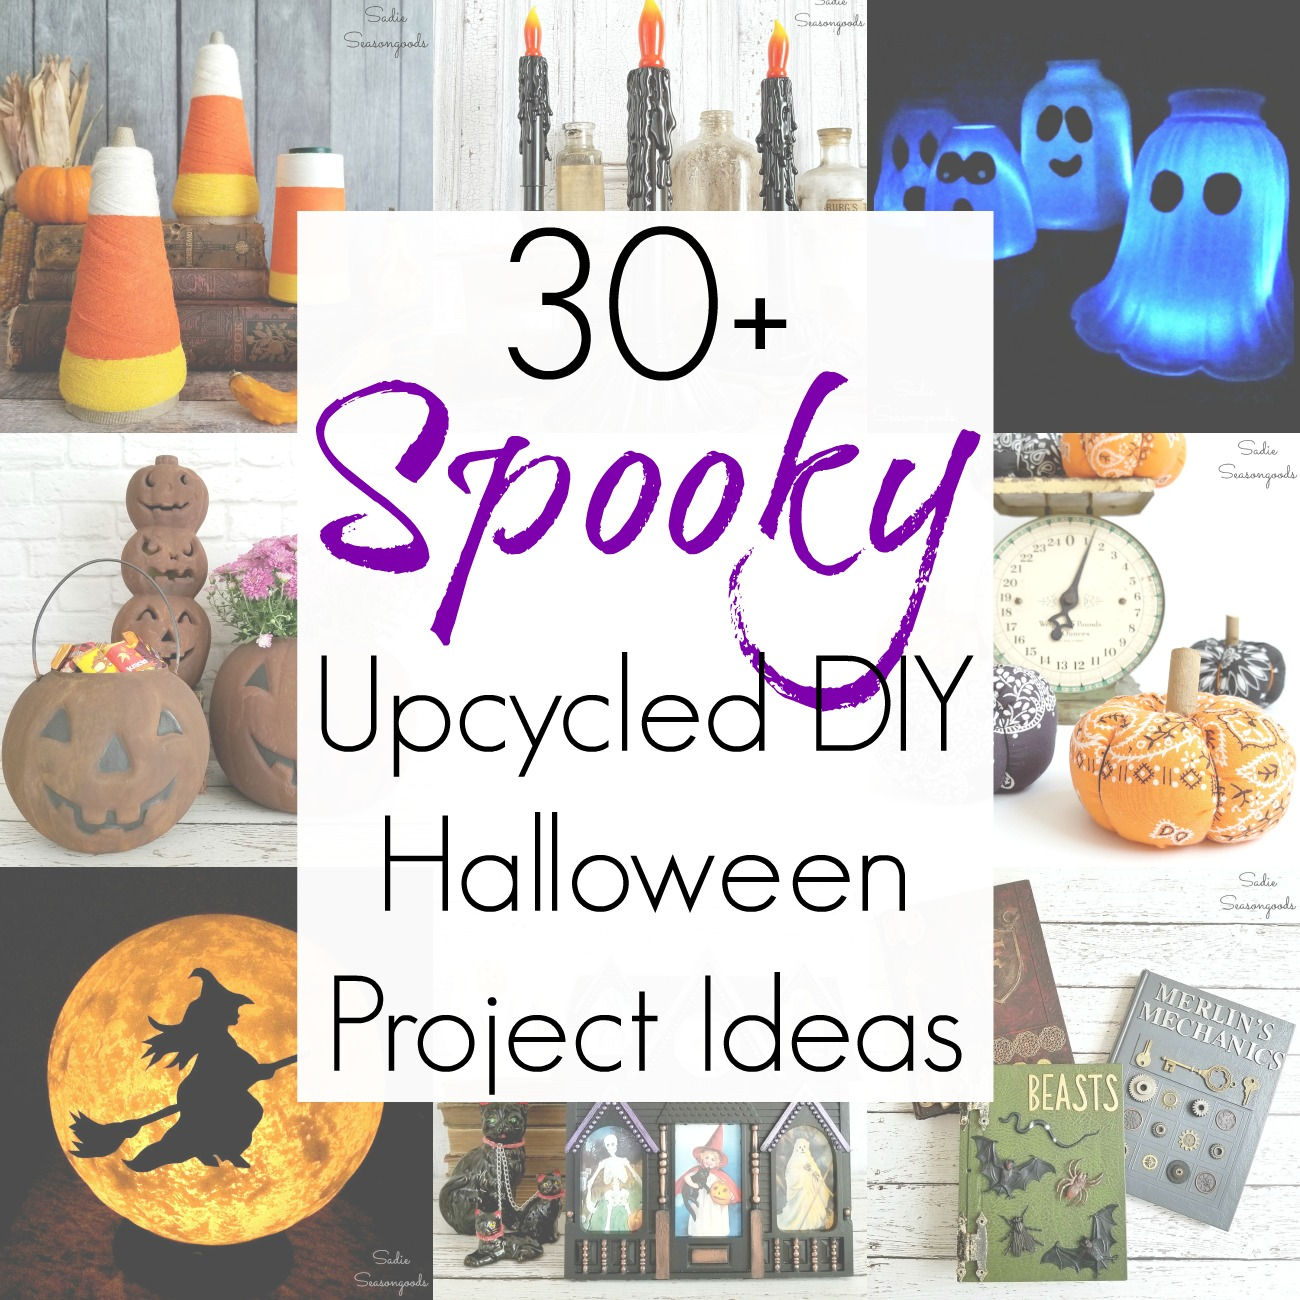 30+ Upcycling Ideas and Repurposed Projects for Halloween Decor